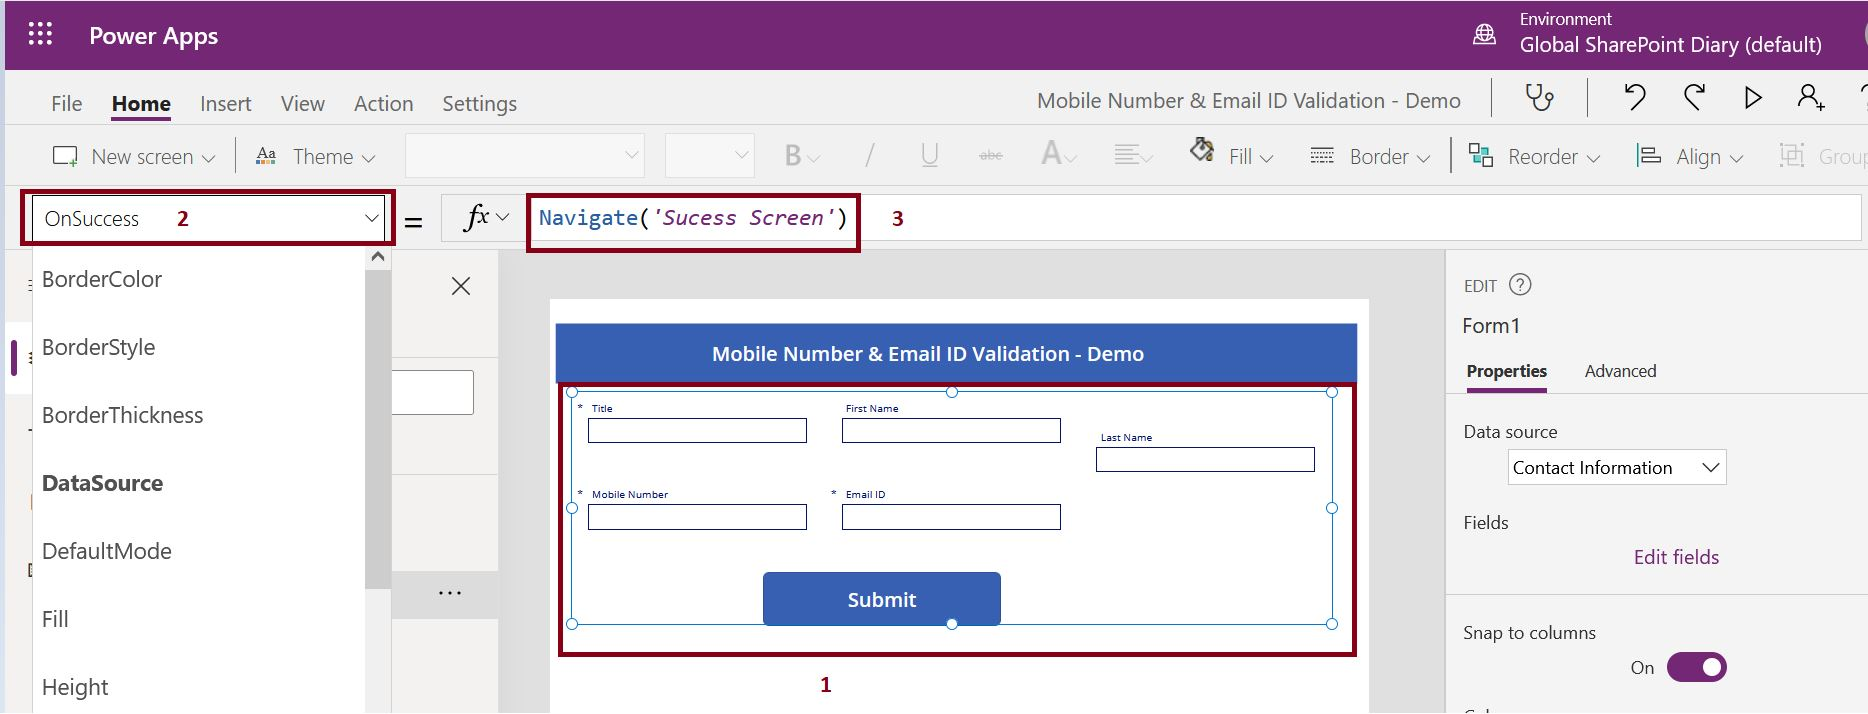 PowerApps OnSuccess event to navigate to successful screen